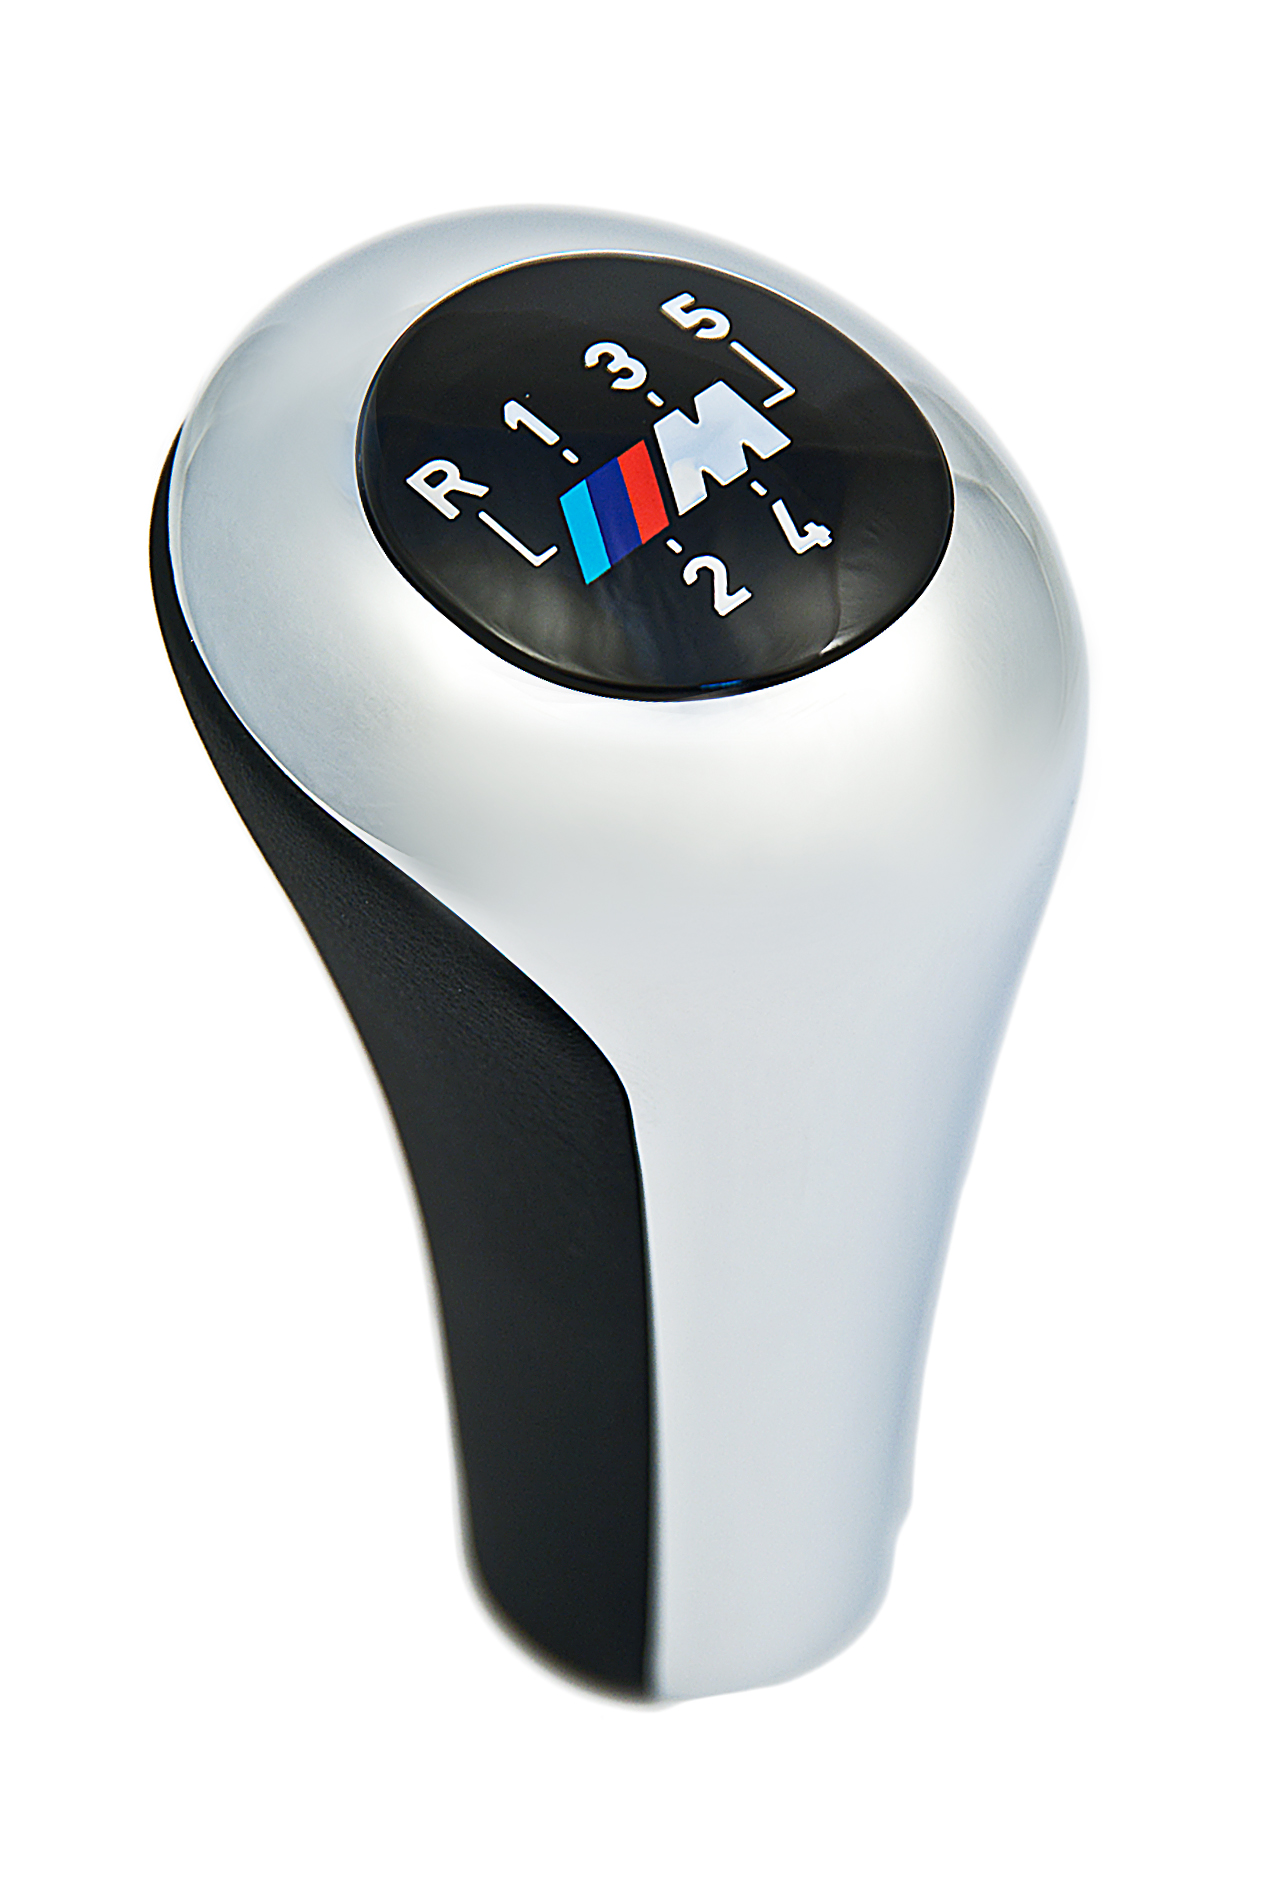 Gear Stick Knobs Ebay Gear Stick/shift Knob